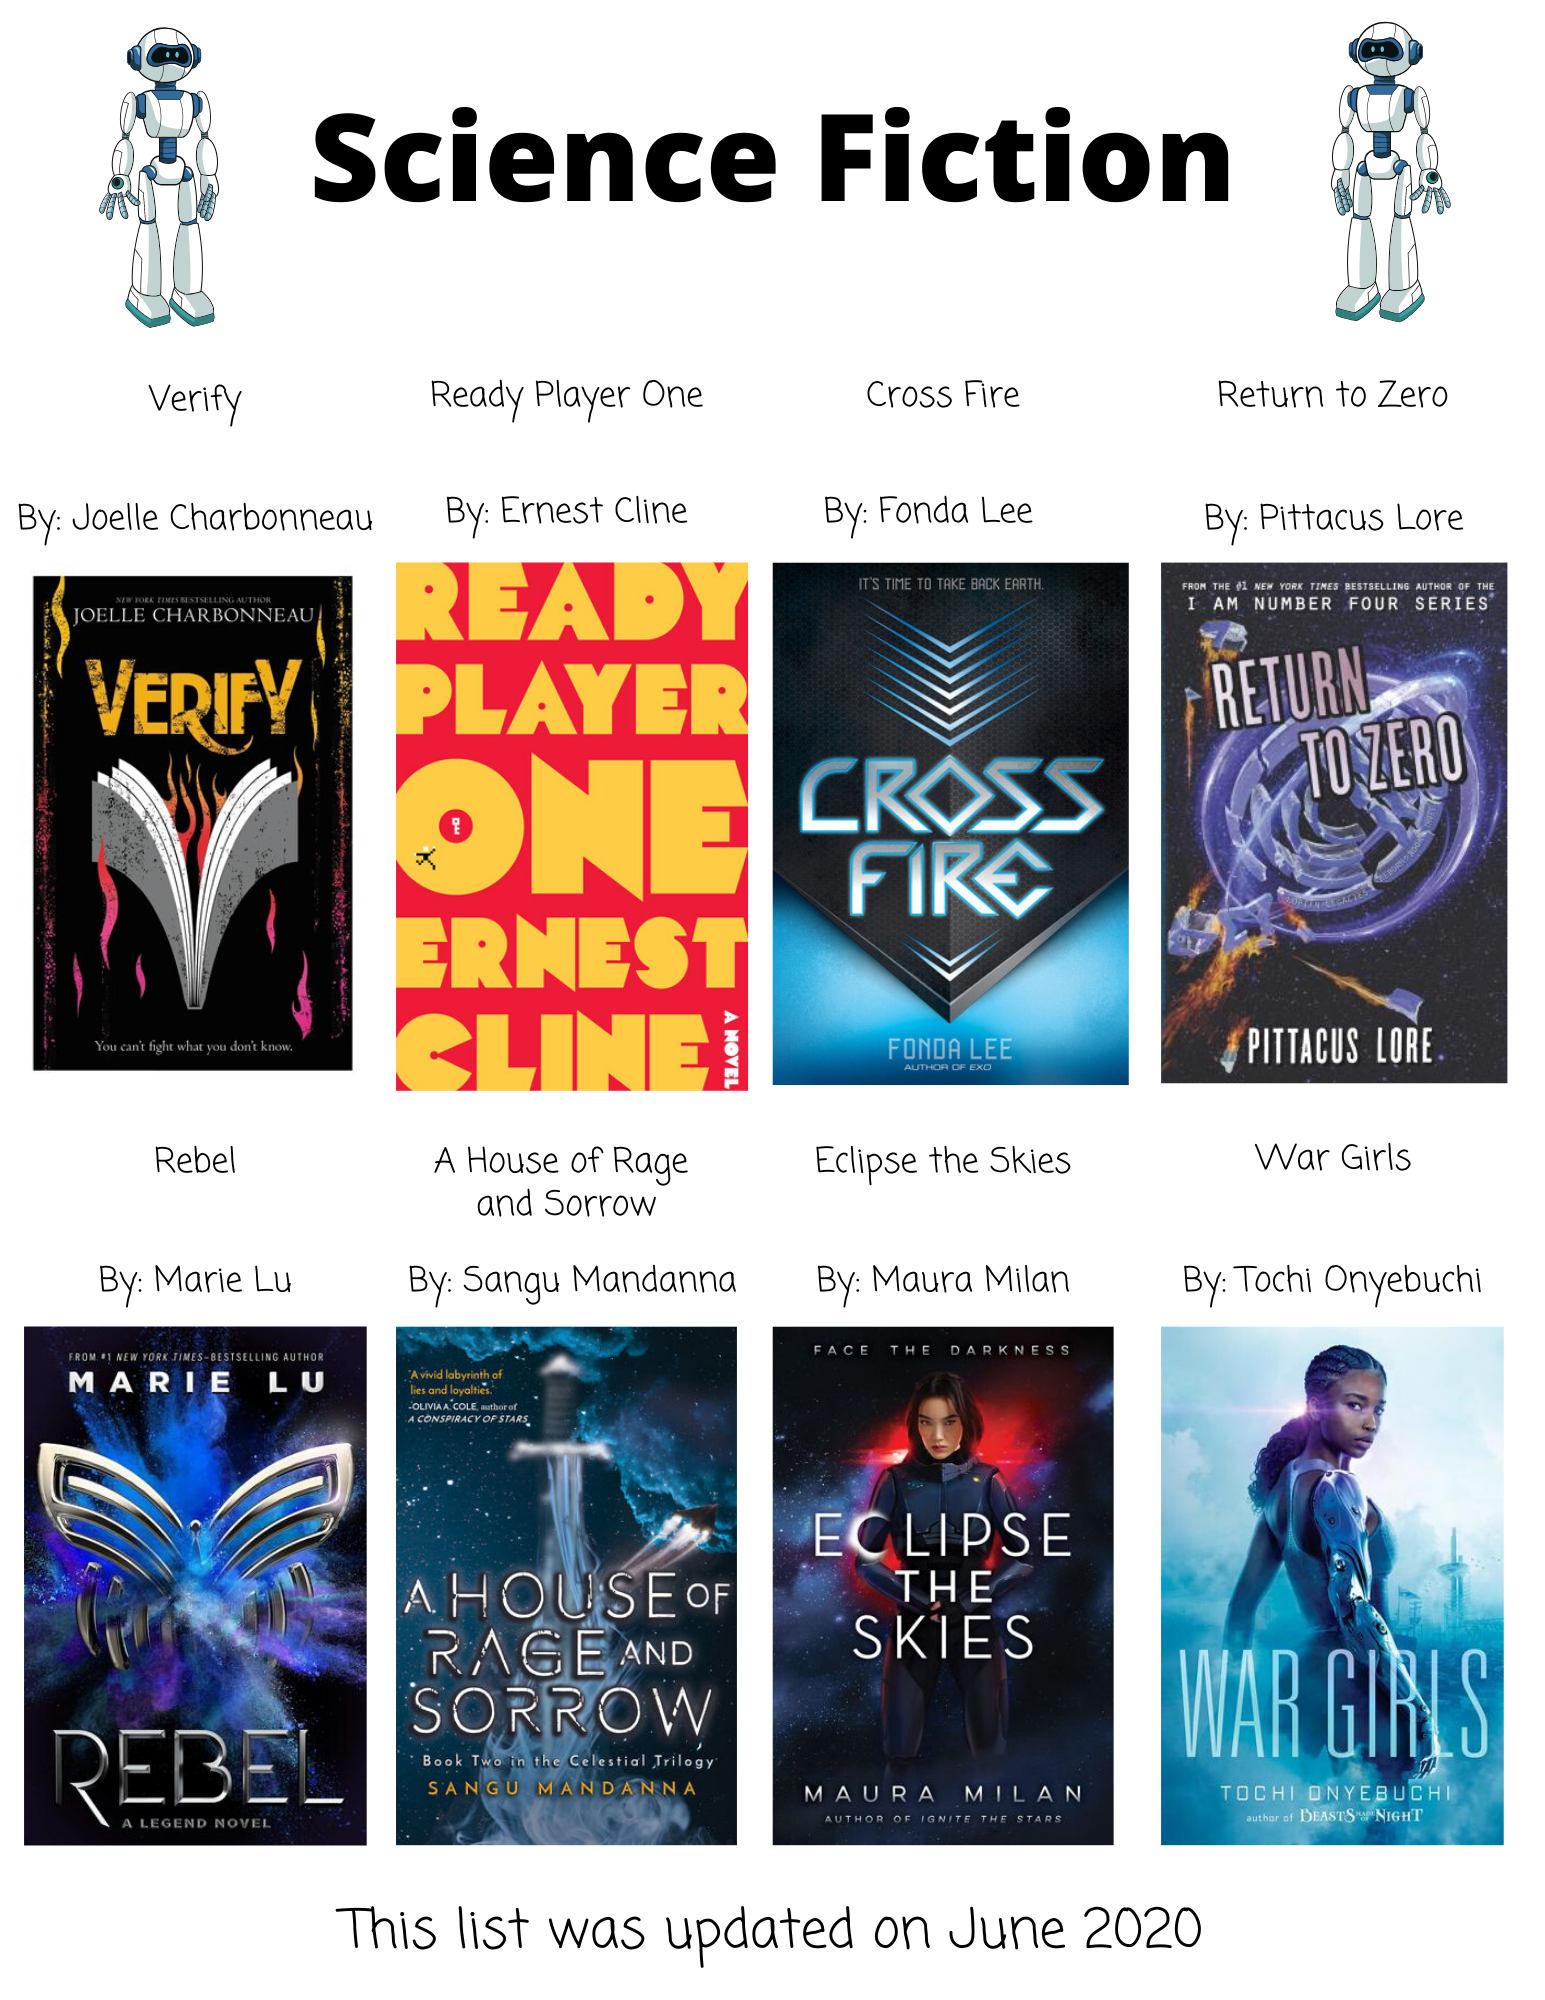 Science Fiction  Verify By: Joelle Charbonneau  Ready Player One  By: Ernest Cline  Cross Fire By: Fonda Lee Return to Zero  By: Pittacus Lore  Rebel By: Marie Lu  A House of Rage  and Sorrow  By: Sangu Mandanna  Eclipse the Skies  By: Maura Milan  War Girls  By: Tochi Onyebuchi  Nyxia Uprising By: Scott Reintgen  Starsight  By: Brandon Sanderson  Girls with Sharp Sticks  By: Suzanne Young  Immunity  By: Erin Bowman  How We Became  Wicked  By: Alexander Yates The Kingdom By: Jess Rothenberg  Mayhem and Madness  By: J. A. Dauber City of Beasts  By: Corrie Wang